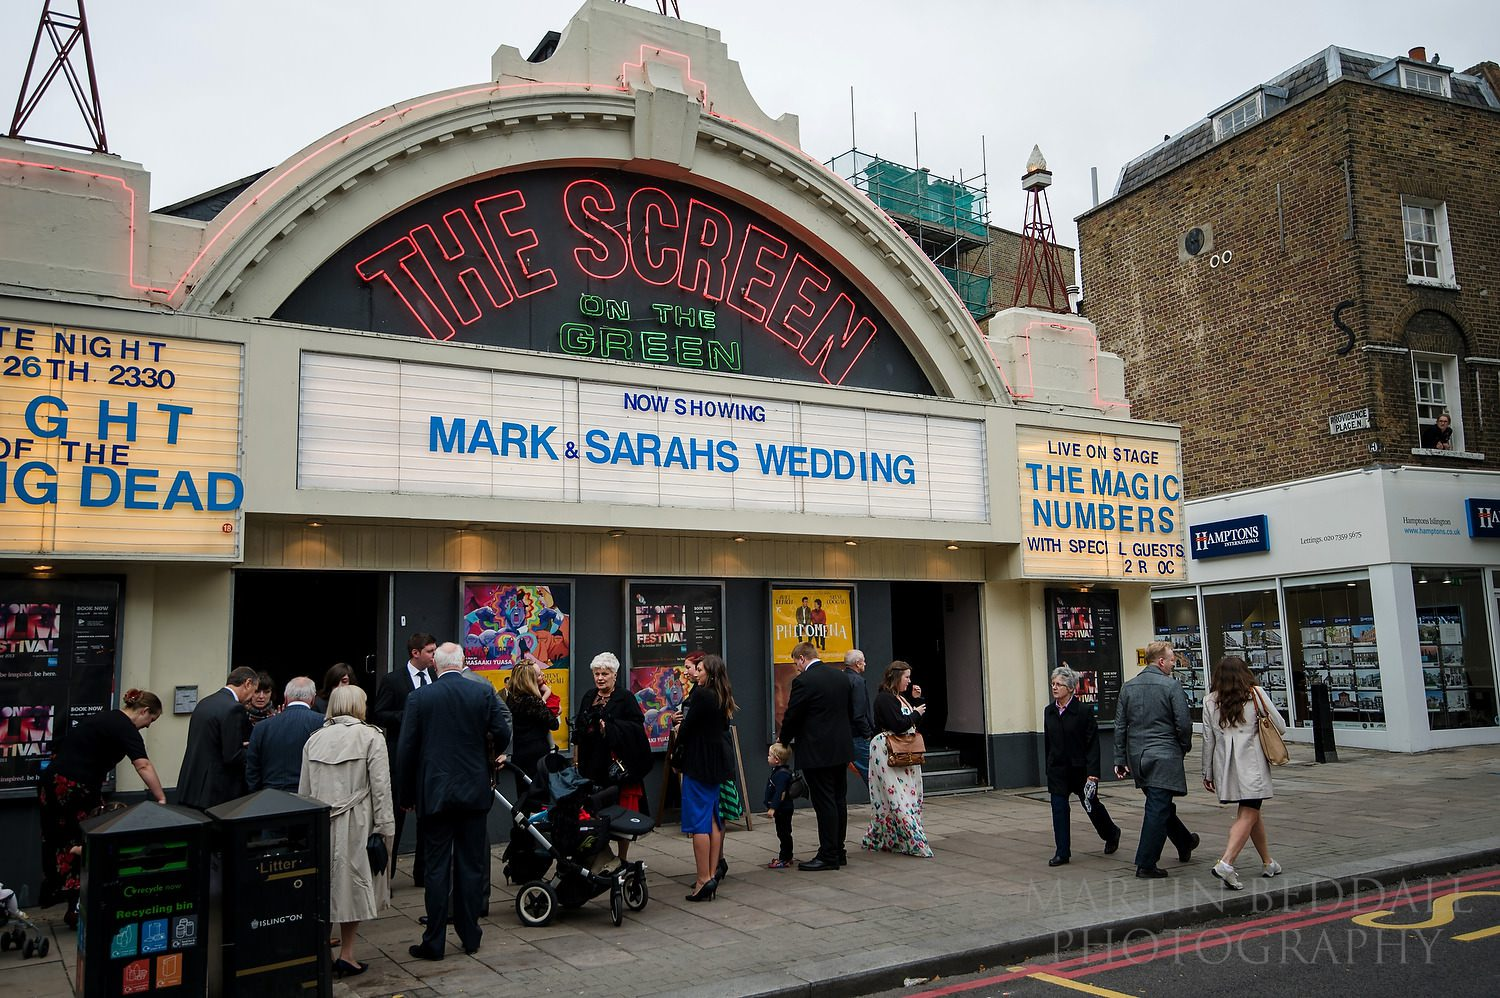 Guests arrive at Screen on the Green wedding